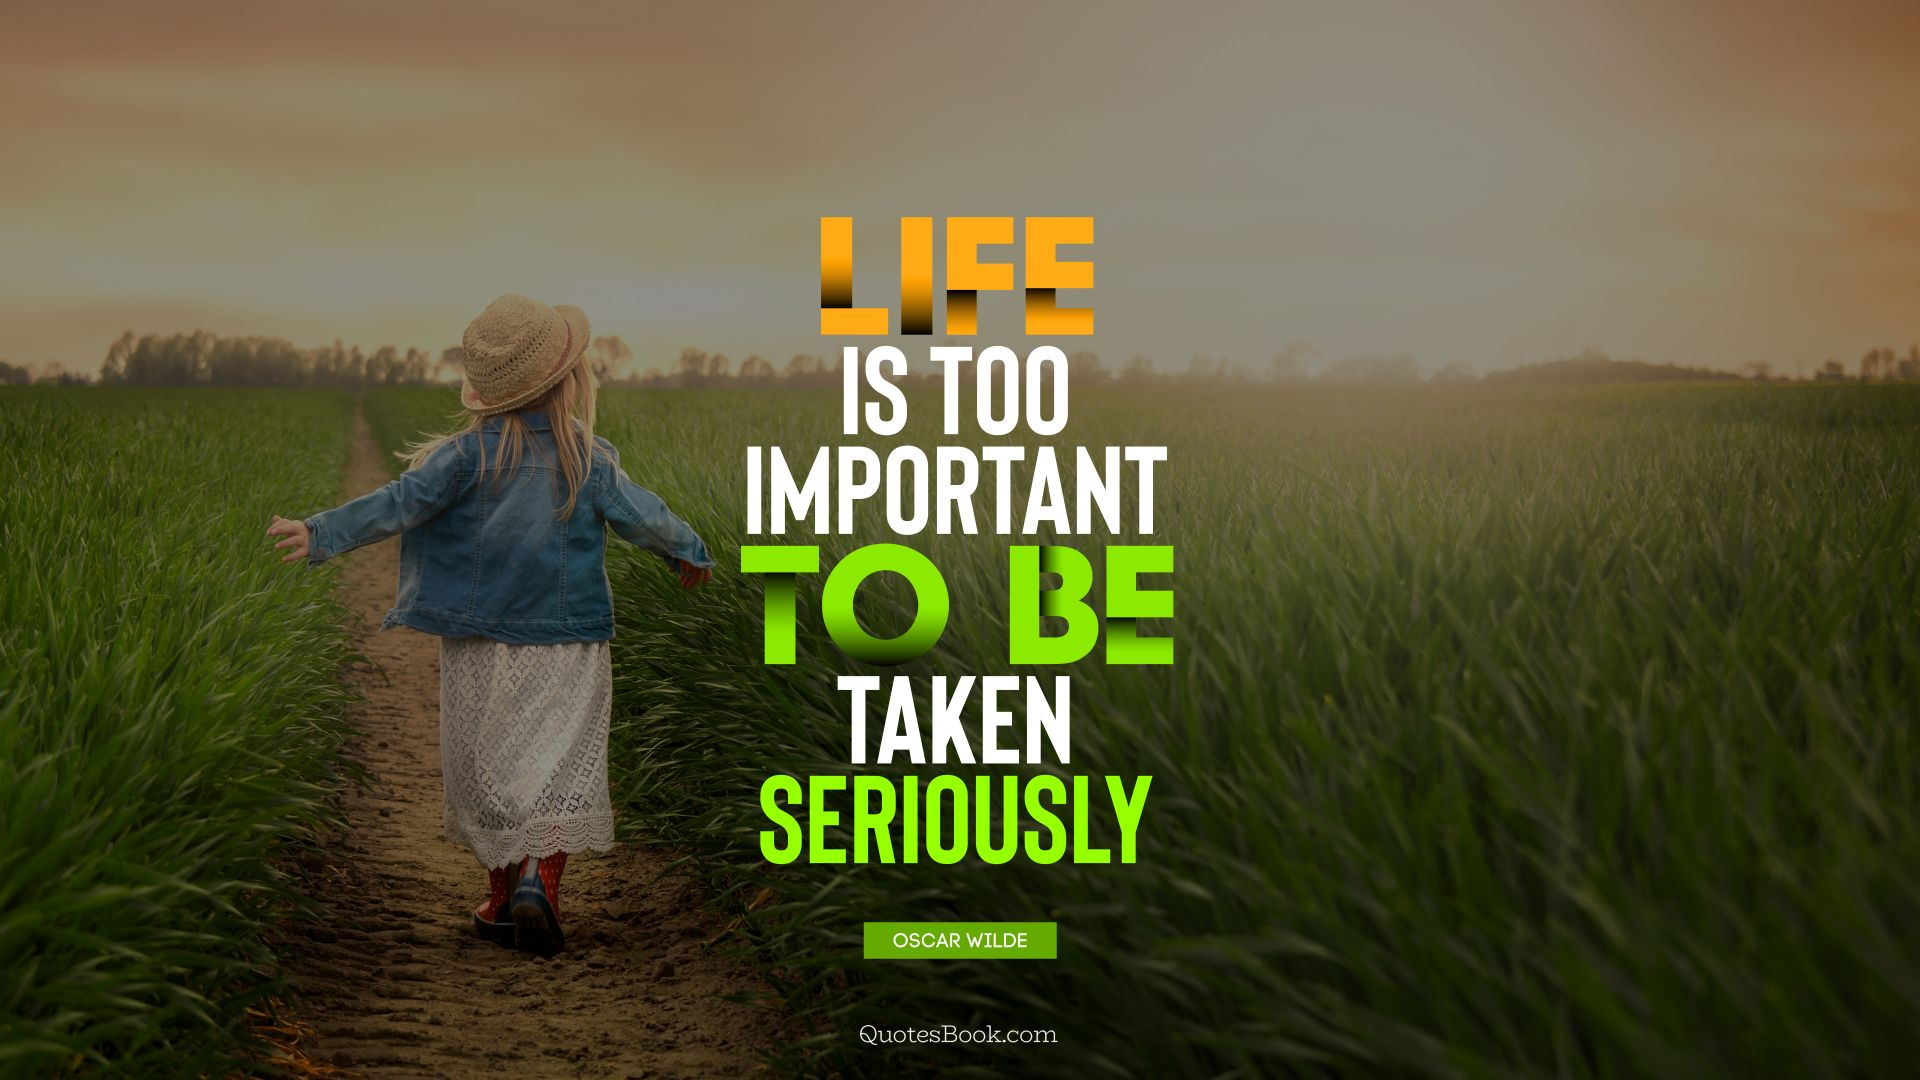 Life is too important to be taken seriously. - Quote by Oscar Wilde